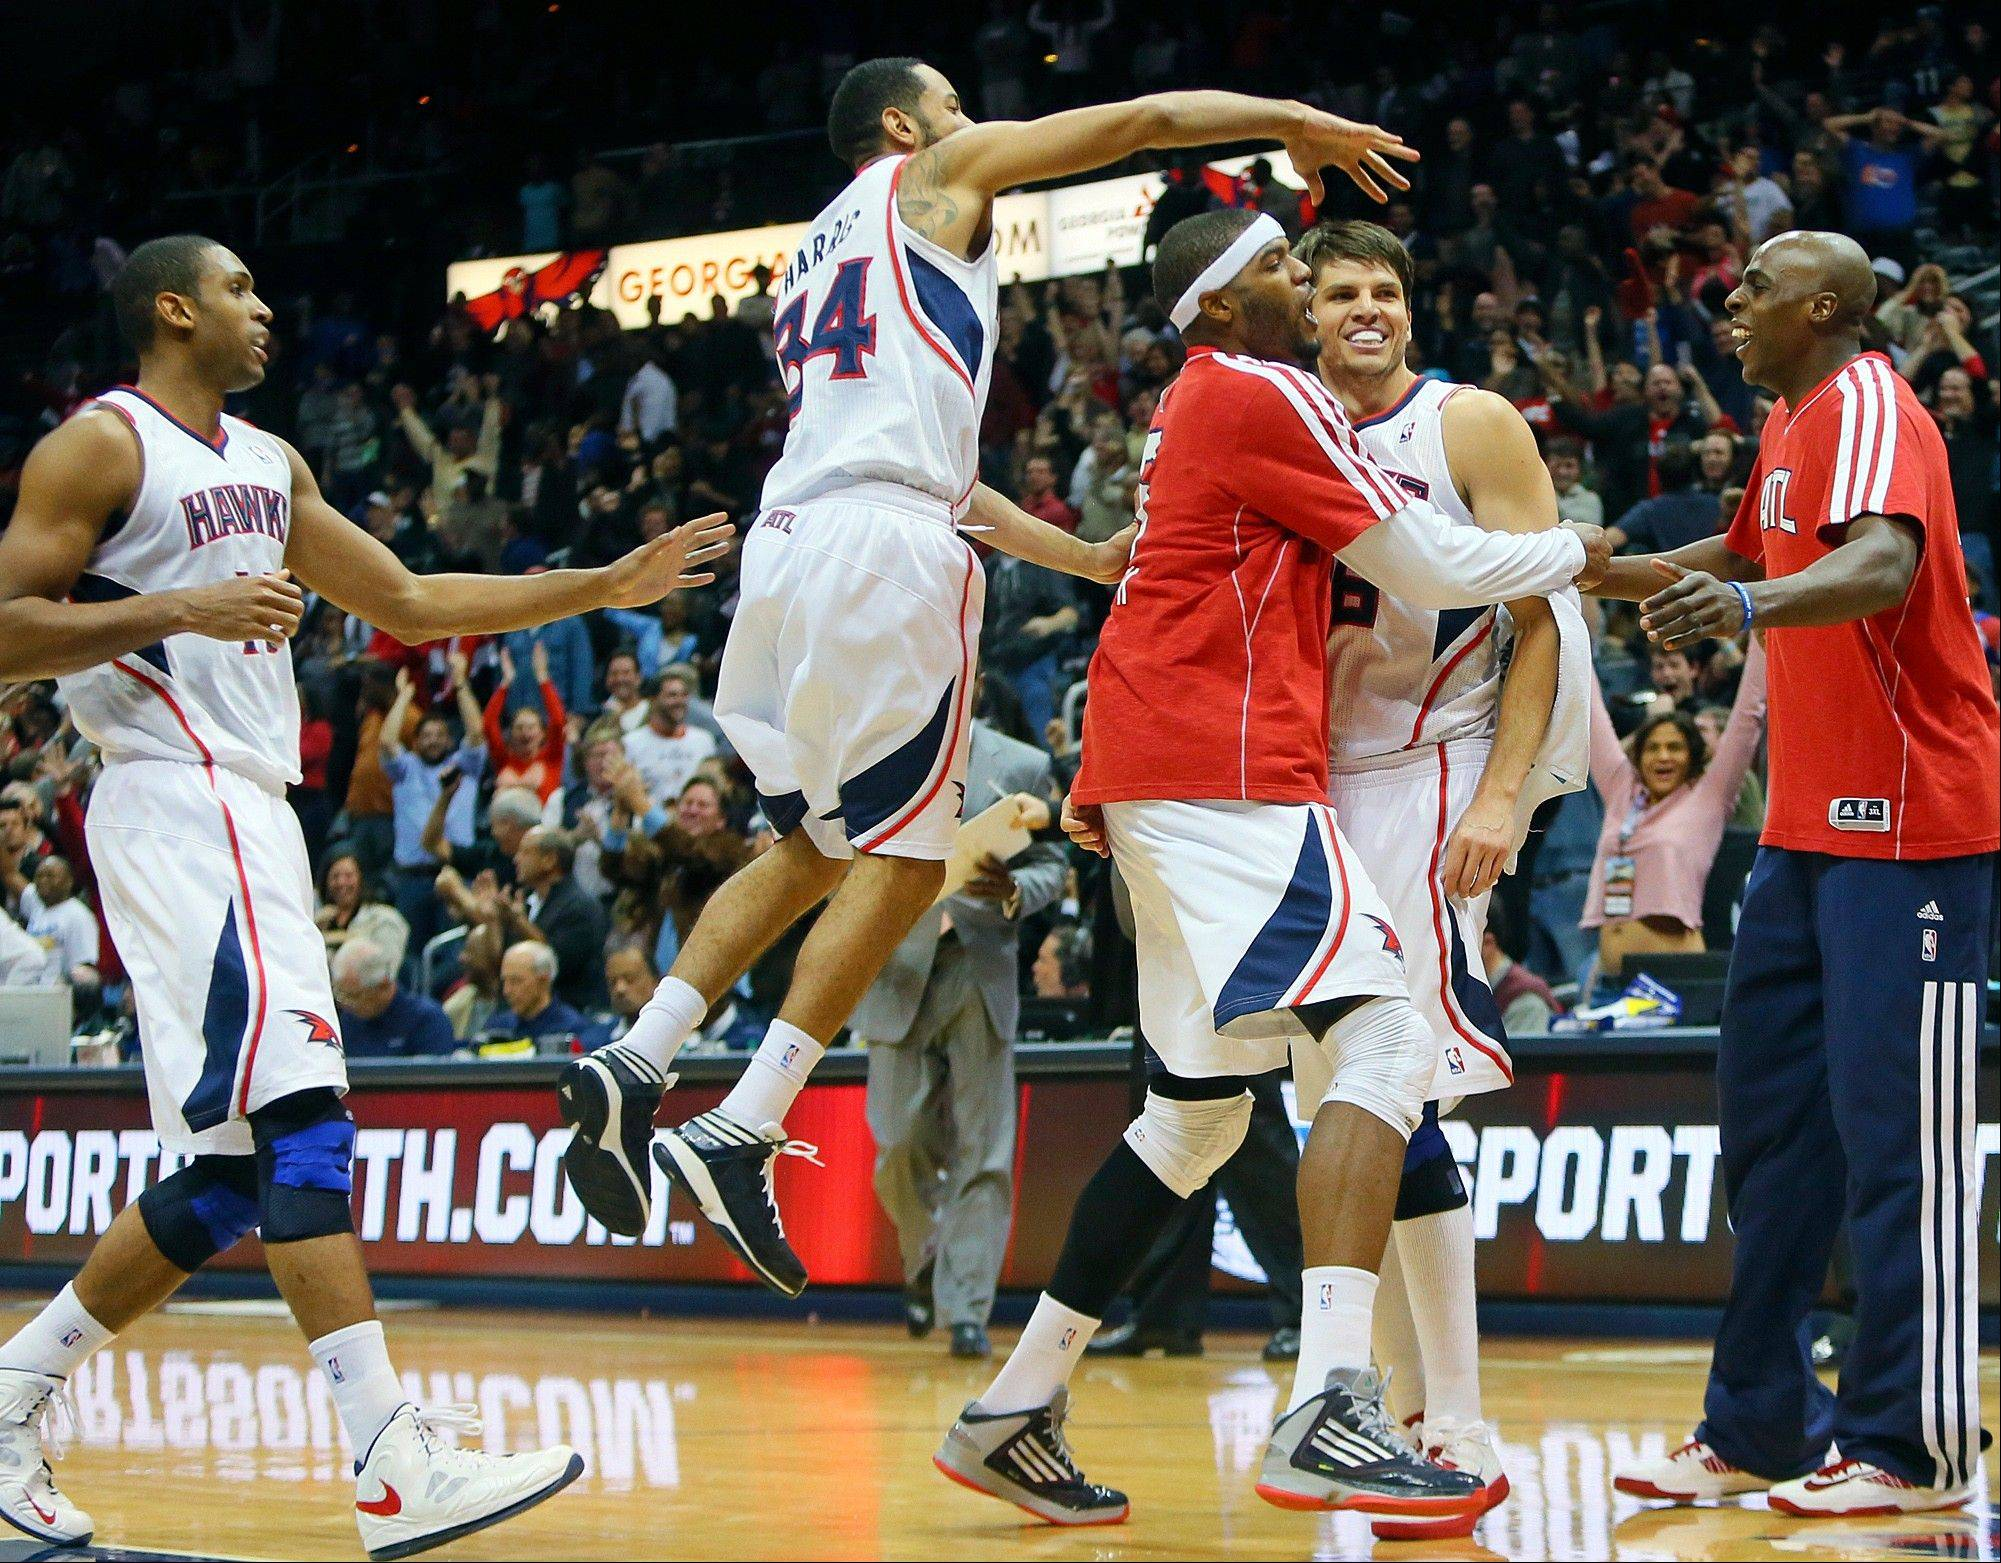 The Hawks' Josh Smith, third from right, grabs Kyle Korver, second from right, after Korver hit the winning 3-pointer against the Washington Wizards on Wednesday in Atlanta.